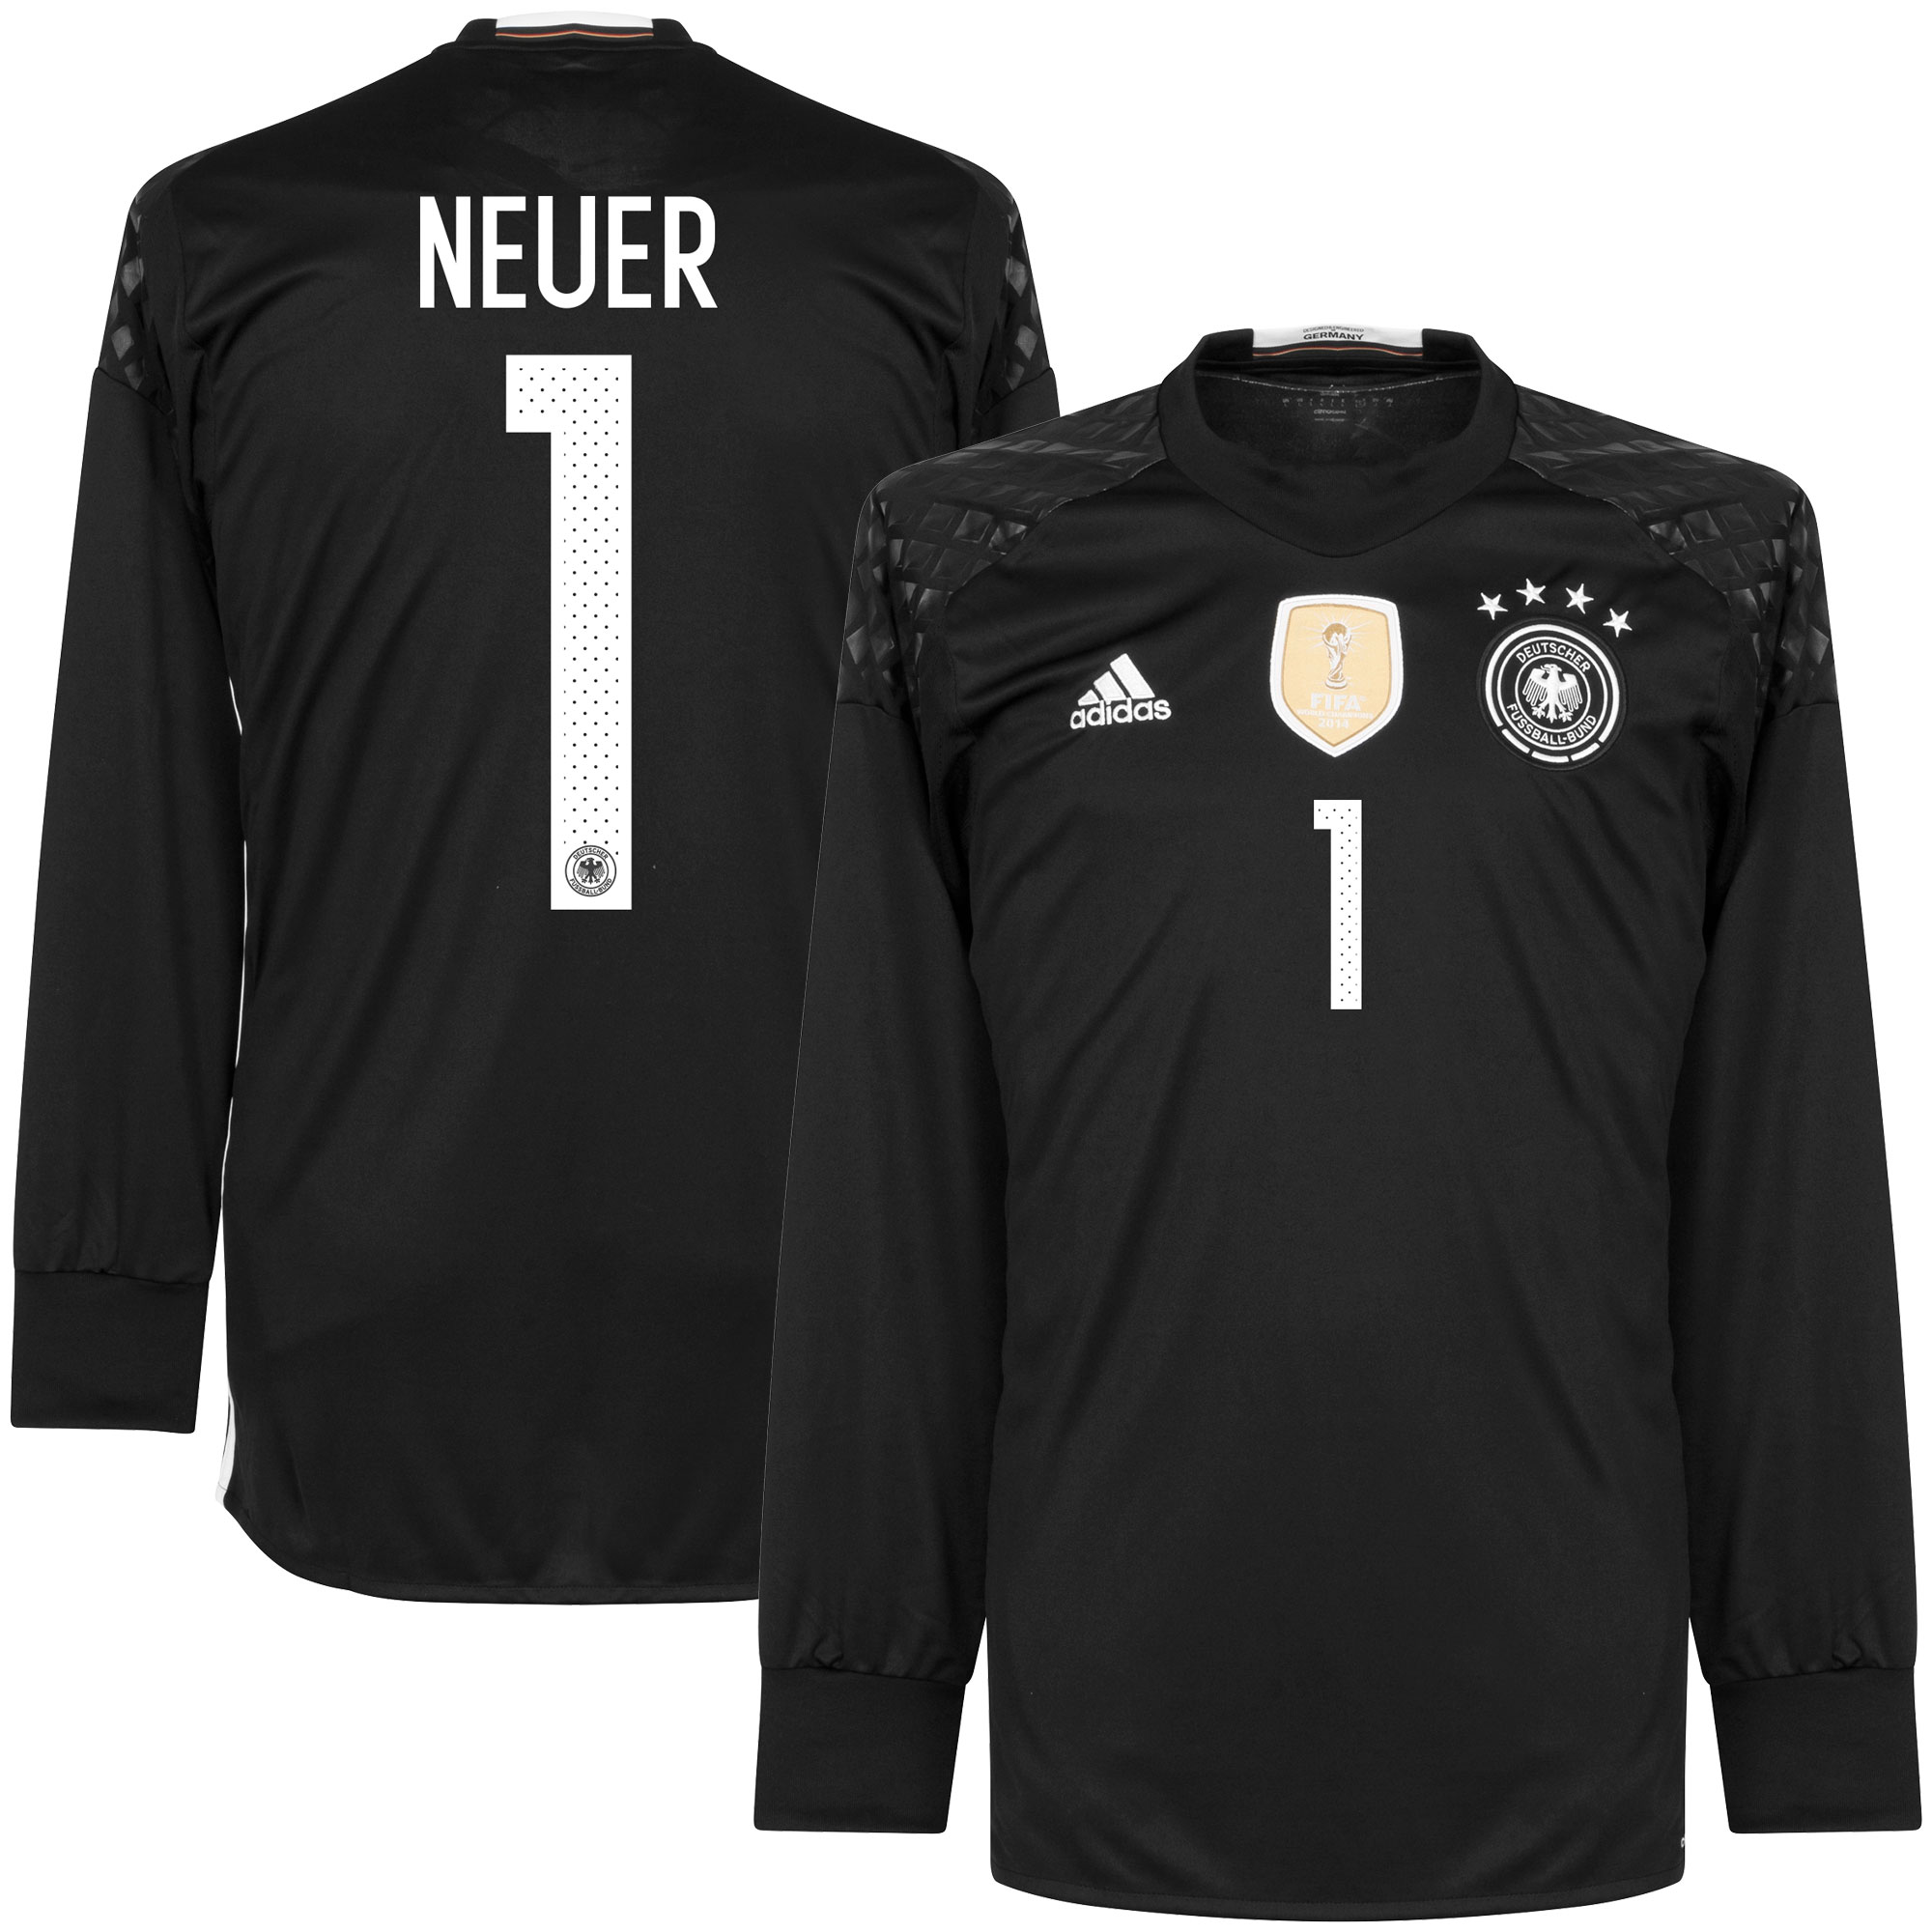 Germany Home Neuer Goalkeeper Jersey 2016 / 2017 - 50